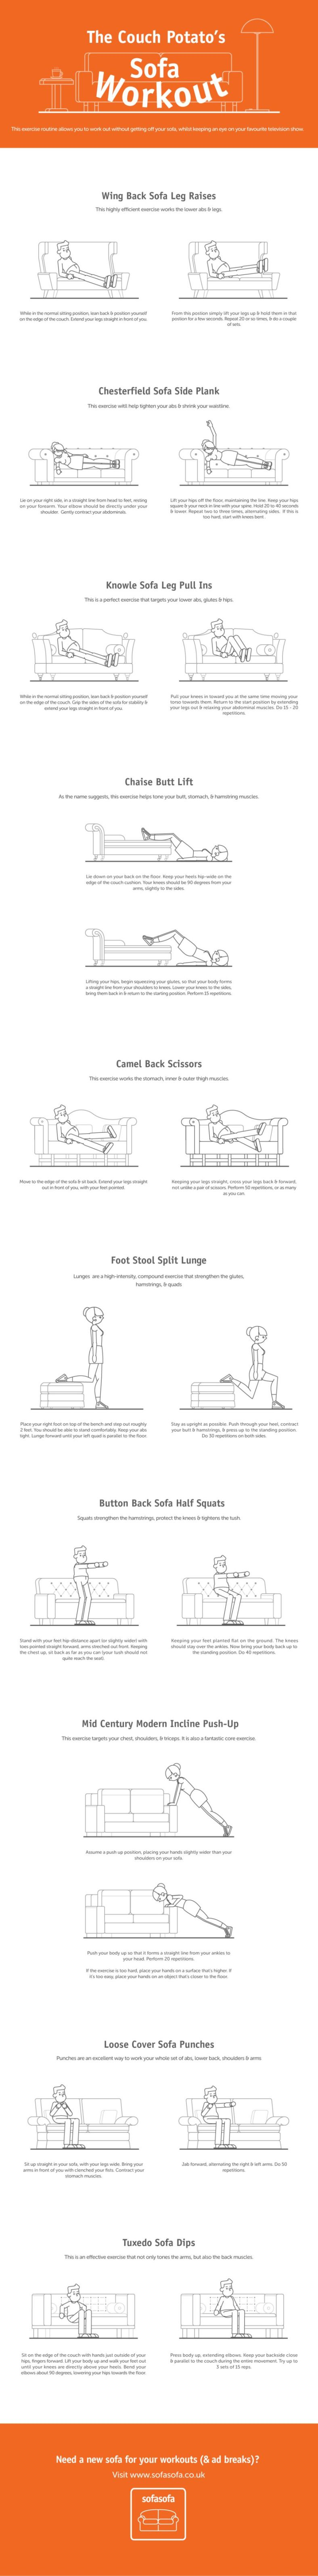 Sofa Workout Do It Daily